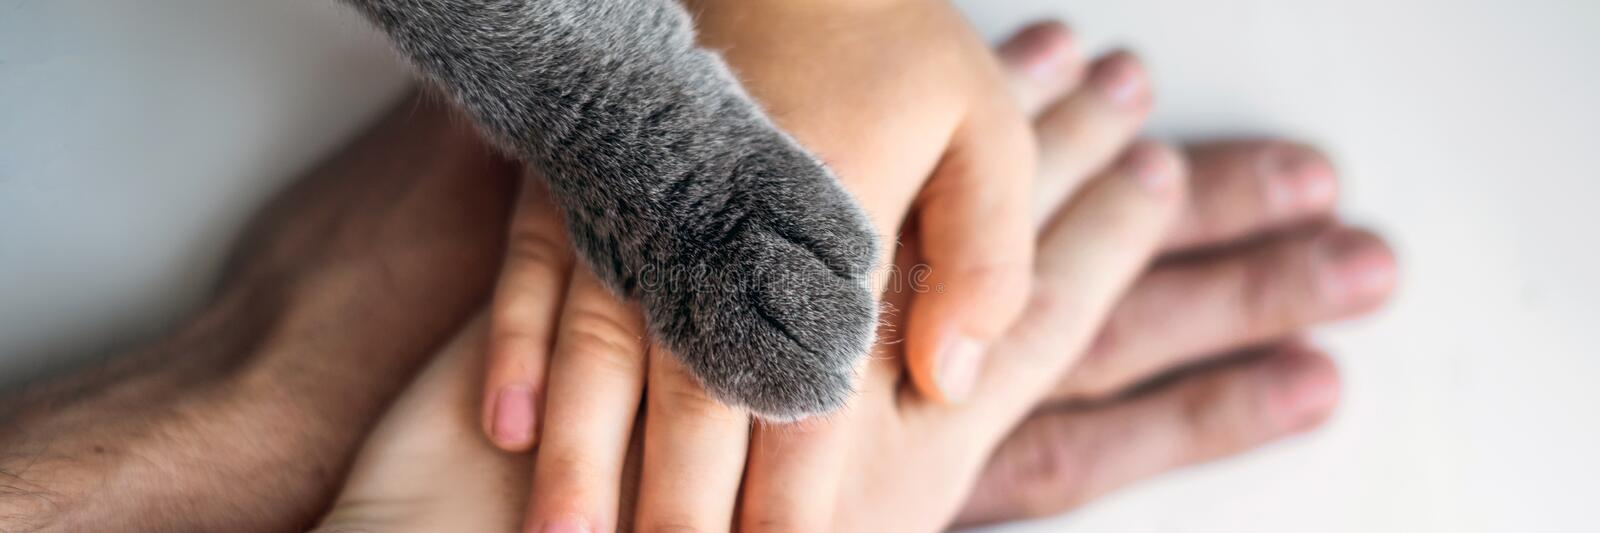 The hands of the family and the furry paw of the cat as a team. Fighting for animal rights, helping animals BANNER, LONG stock photos